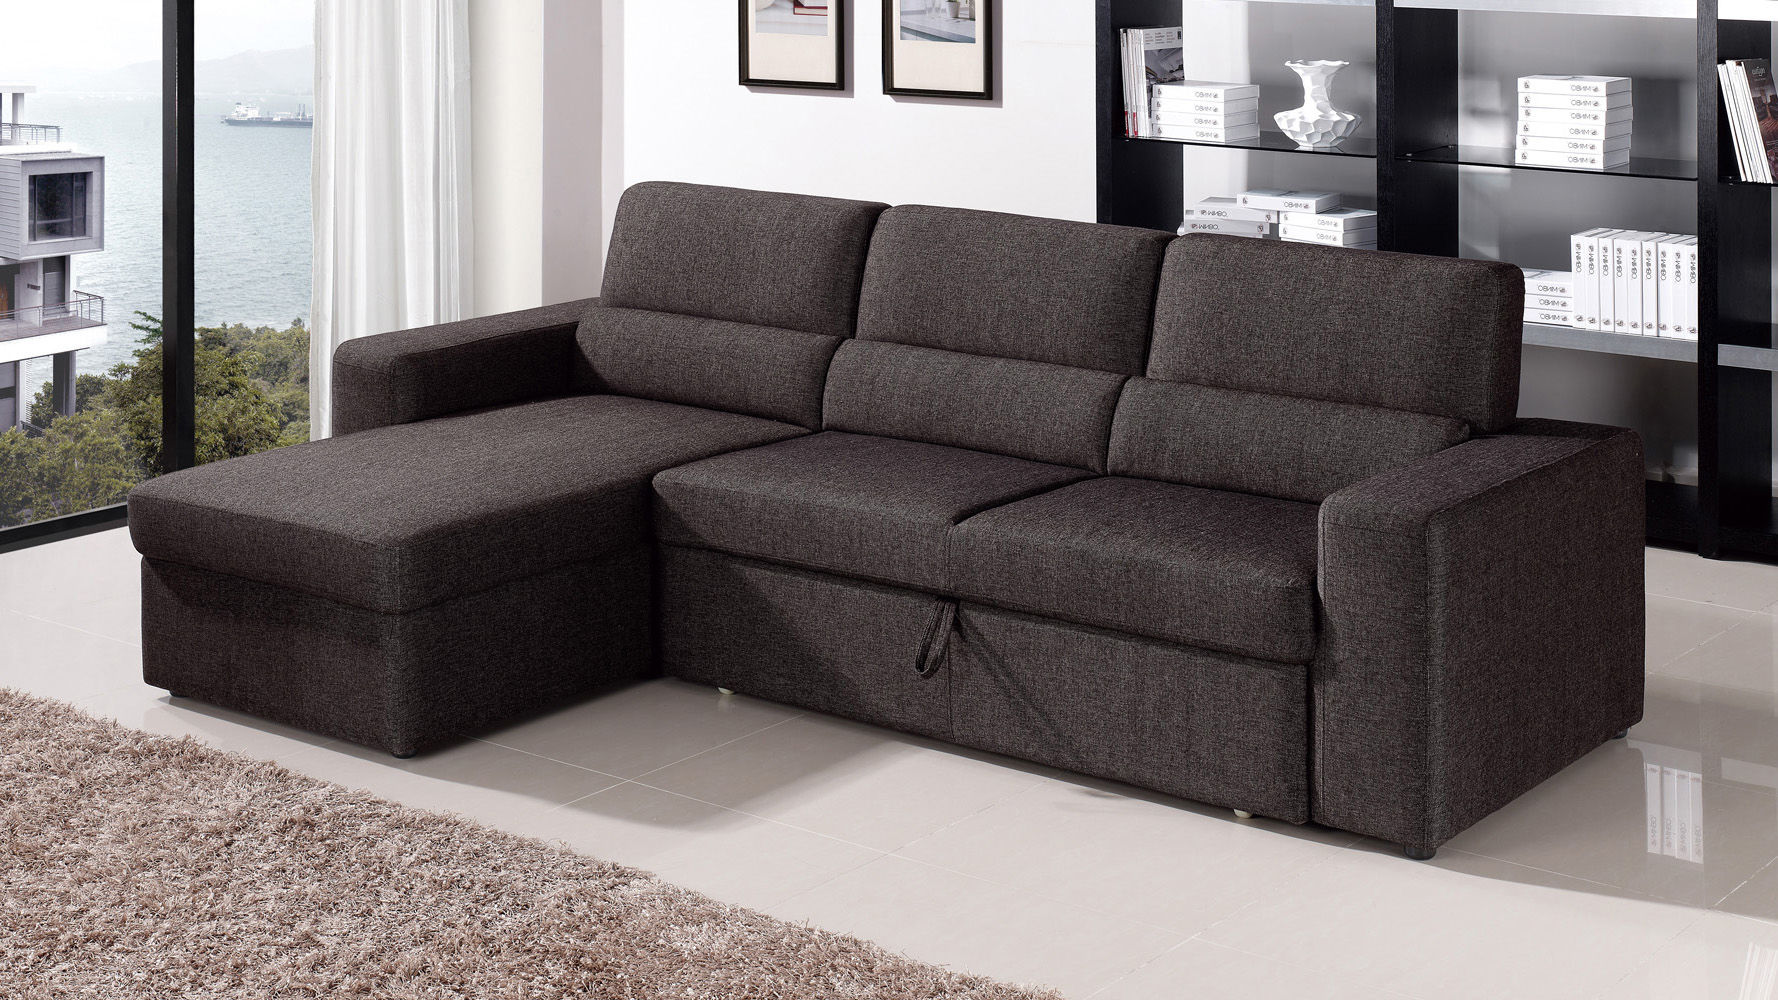 cool loveseat sleeper sofa ikea décor-Cute Loveseat Sleeper sofa Ikea Wallpaper